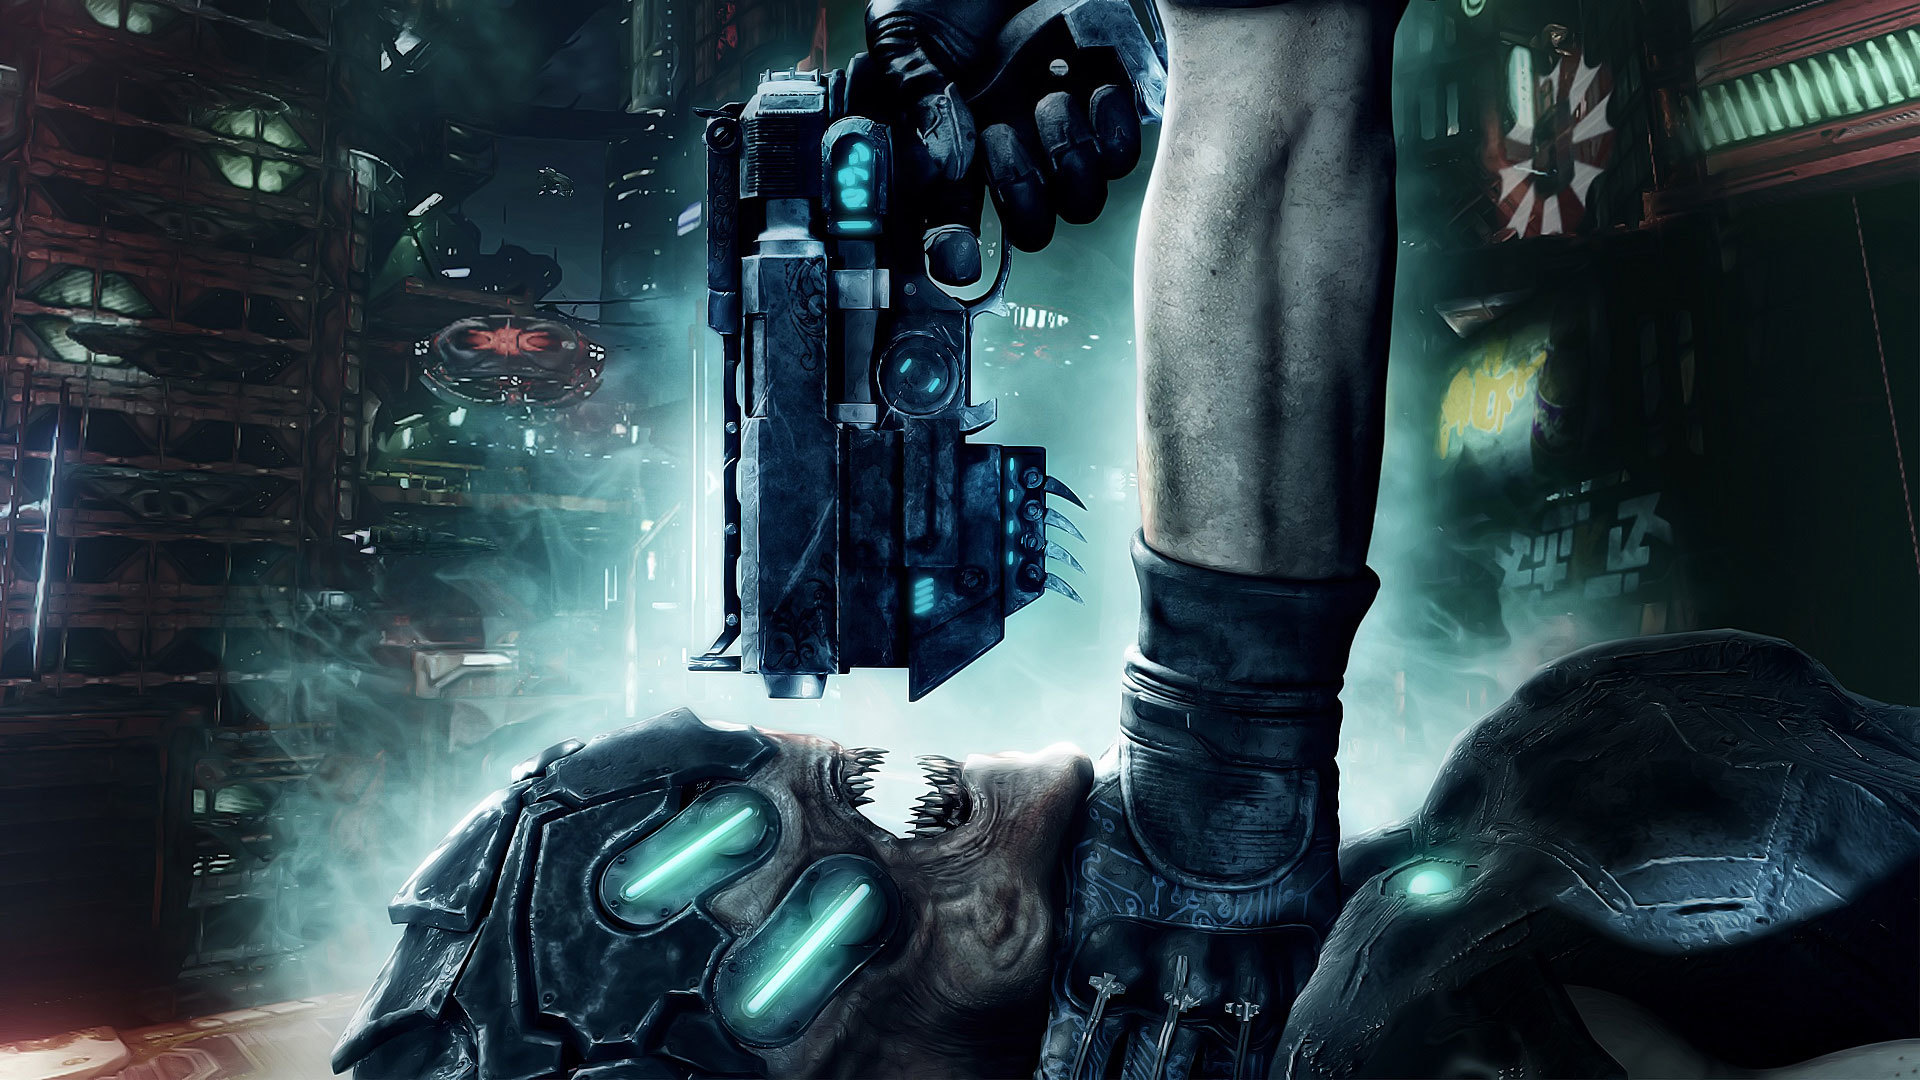 Guns futuristic hands weapons HD Wallpaper